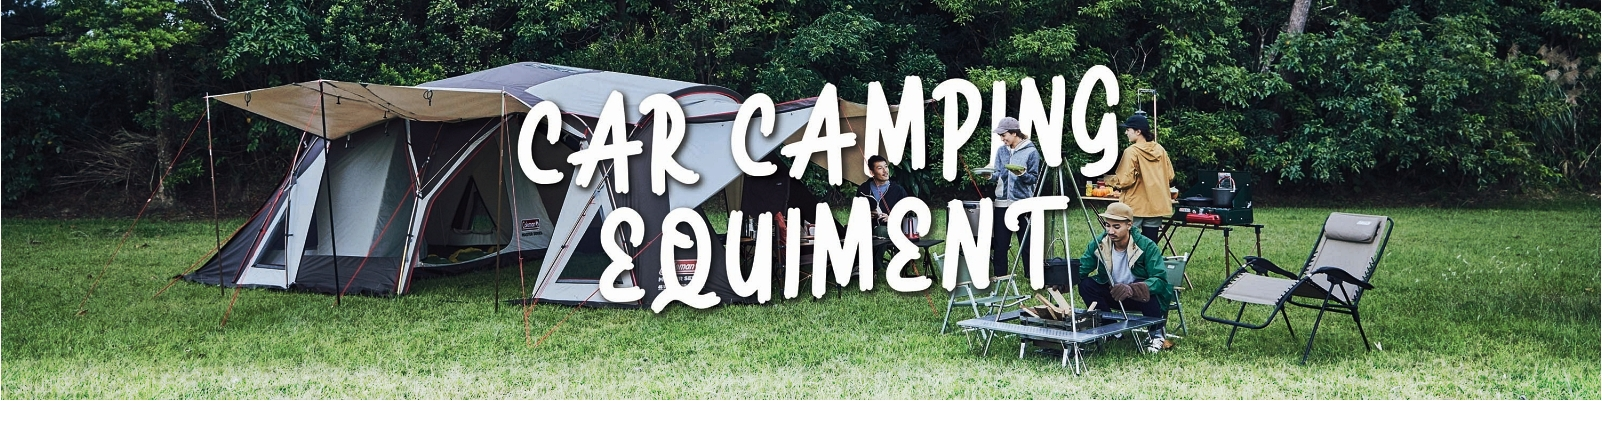 Camping_banner-add-white-1600x400